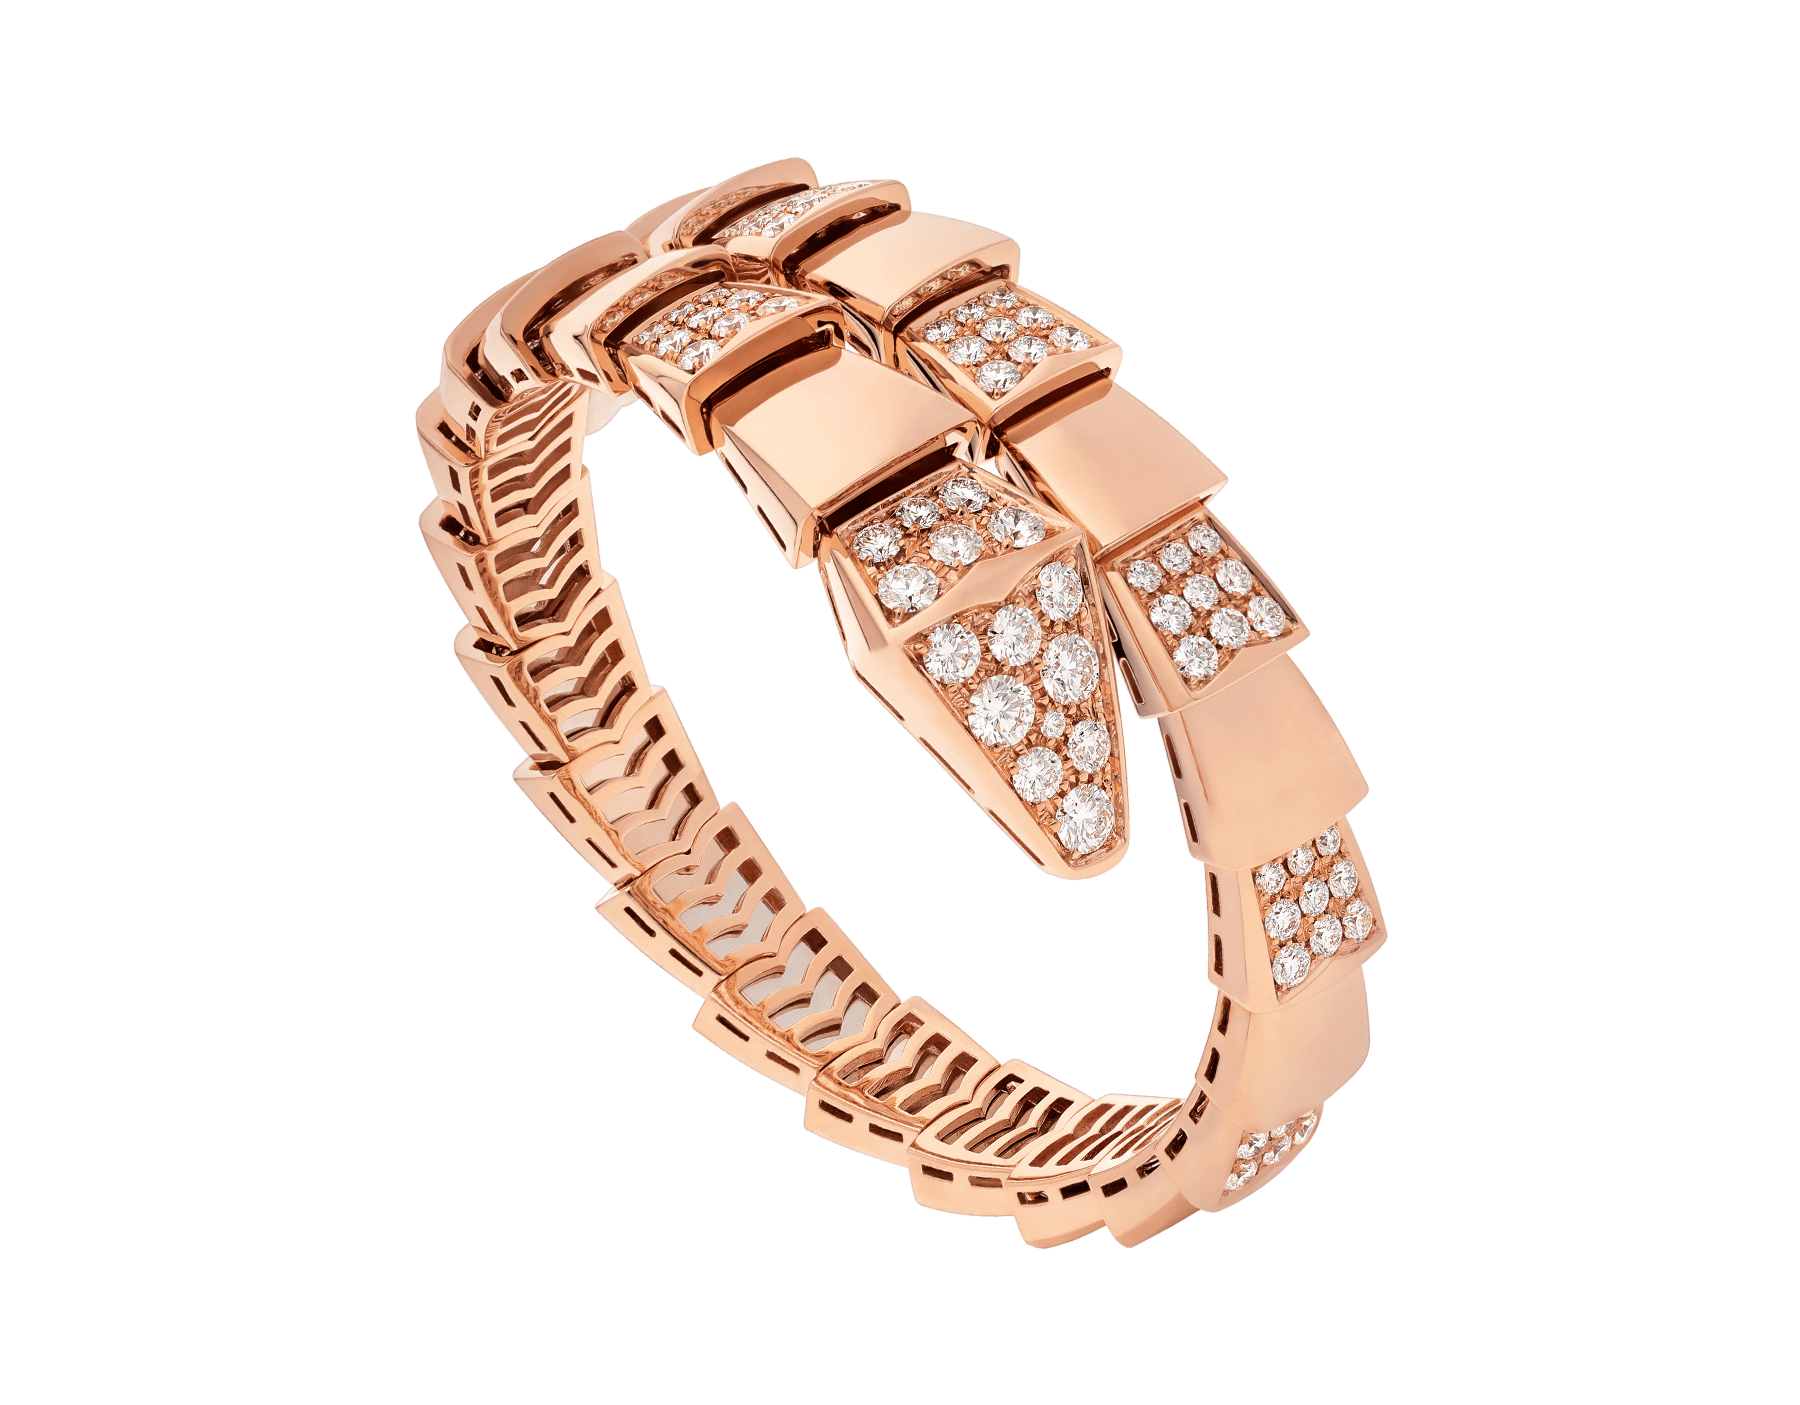 Serpenti Viper one-coil bracelet in 18 kt rose gold, set with demi pavé diamonds. BR855312 image 1